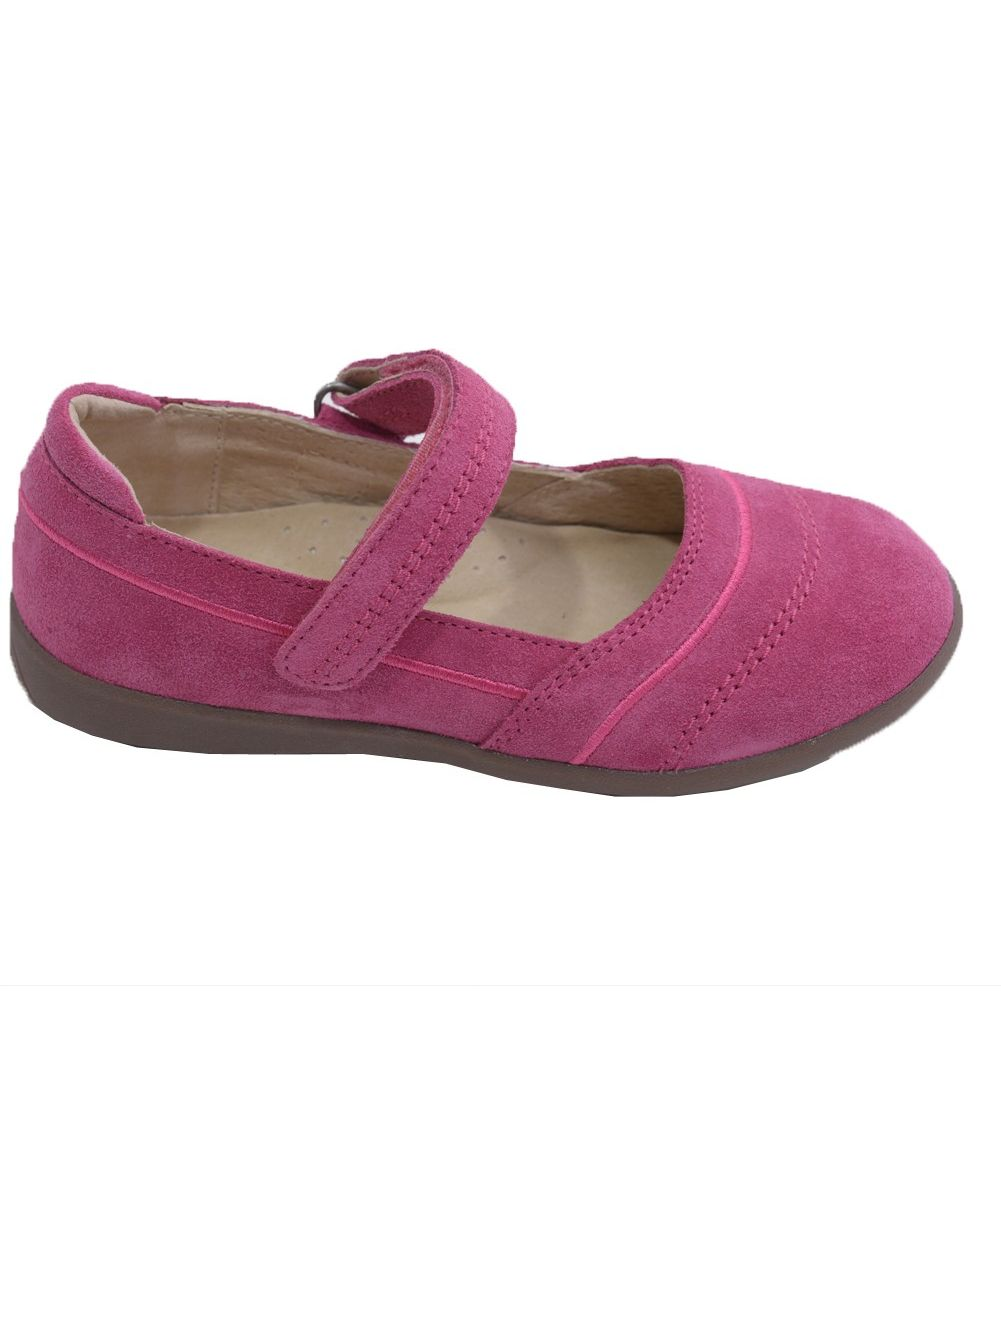 L'Amour Little Jane Girls Fuchsia Sporty Nubuck Leather Mary Jane Little Shoes 11-2 Kids 3d0f54